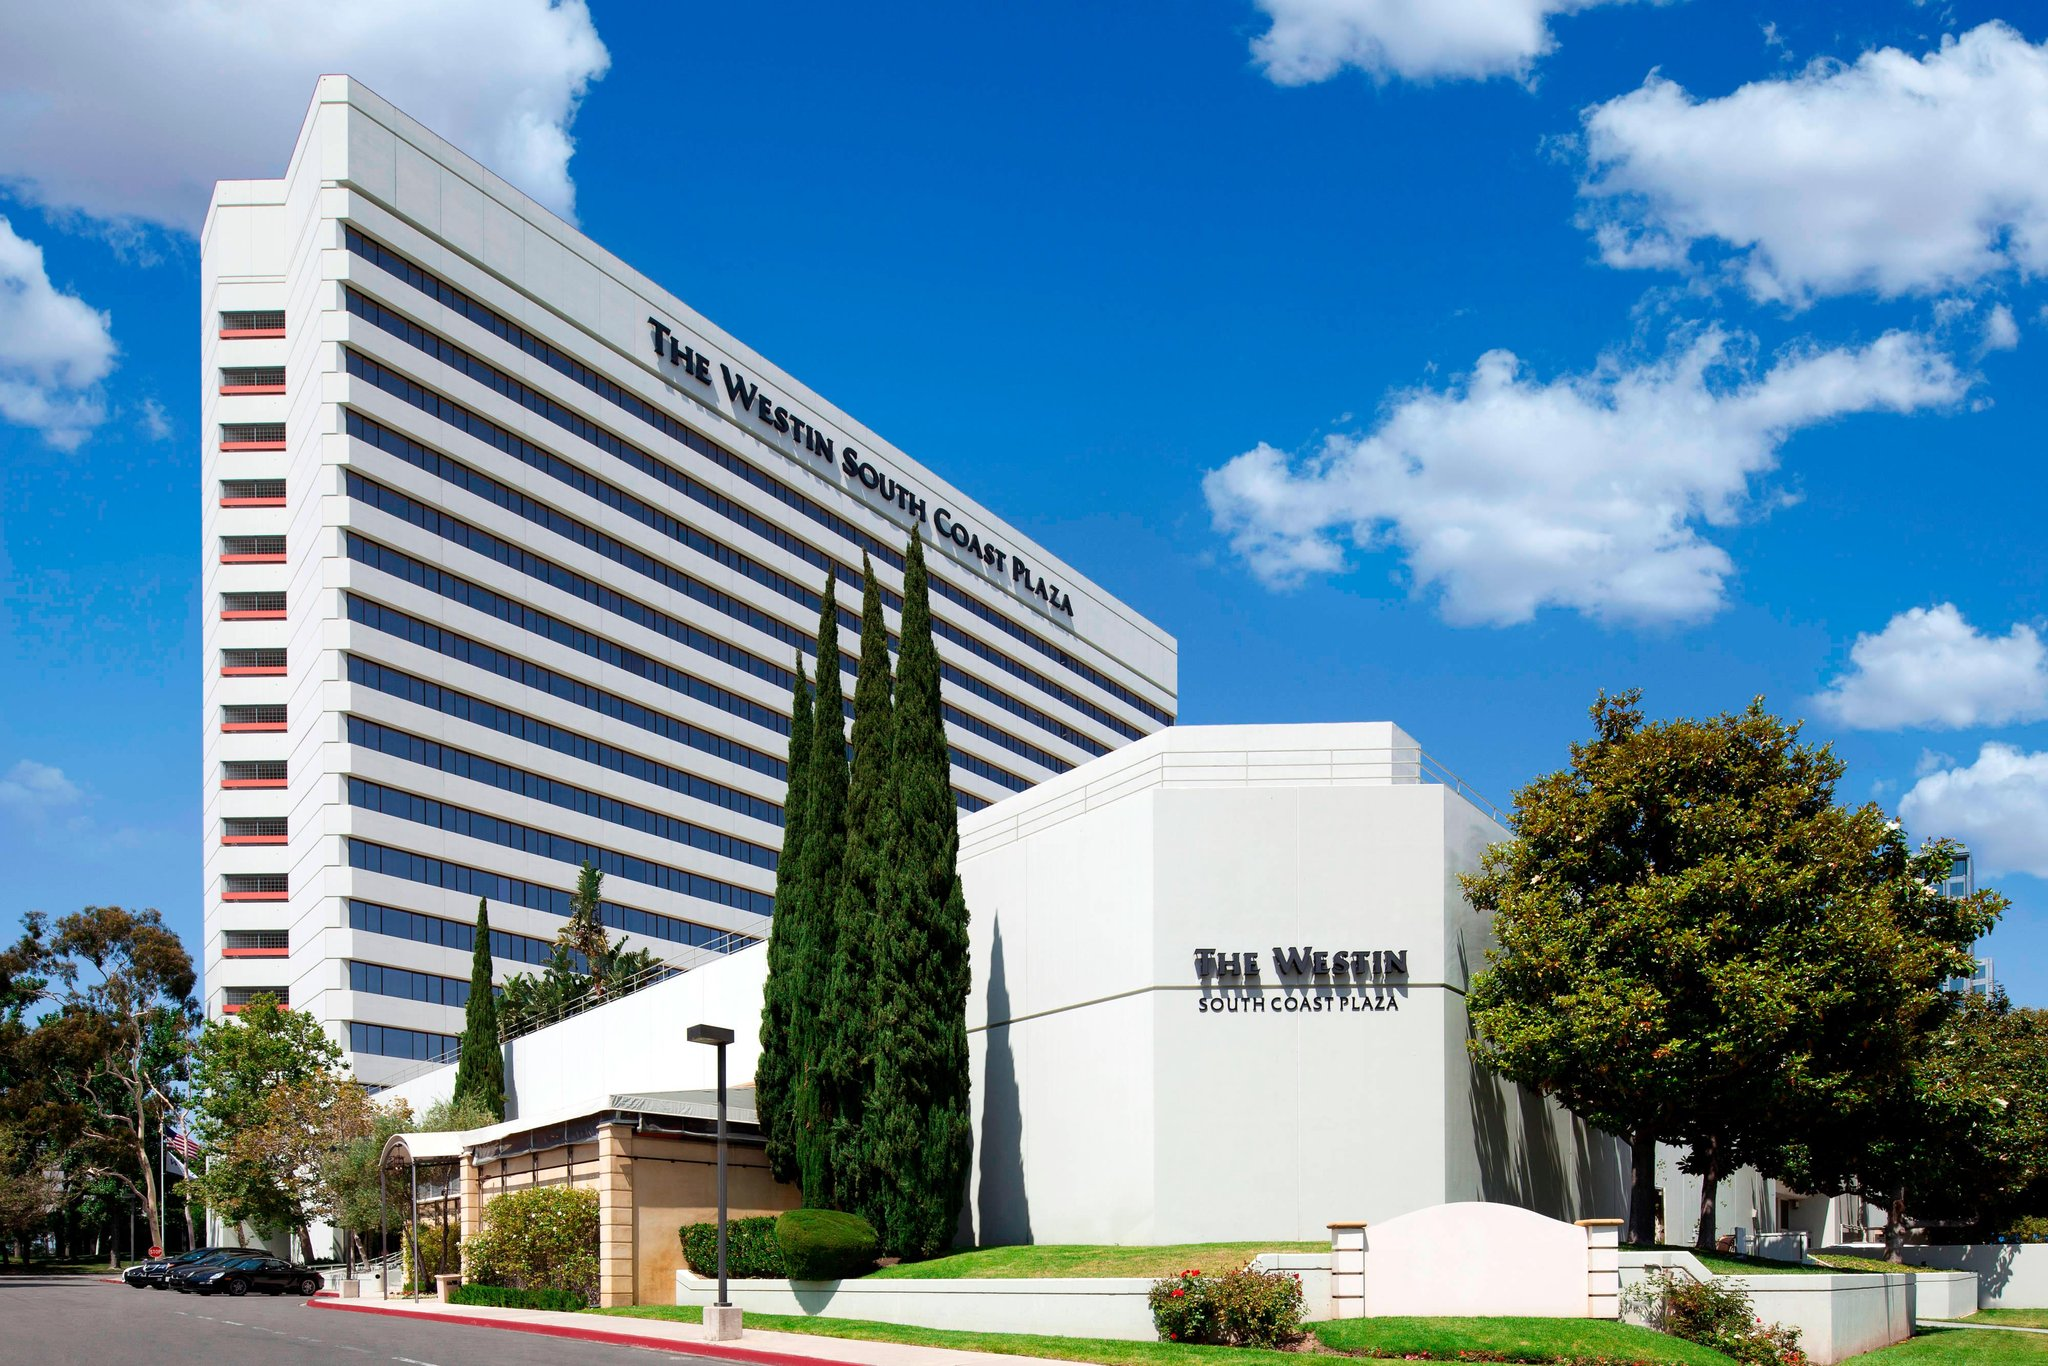 Meetings and events at The Westin South Coast Plaza, Costa